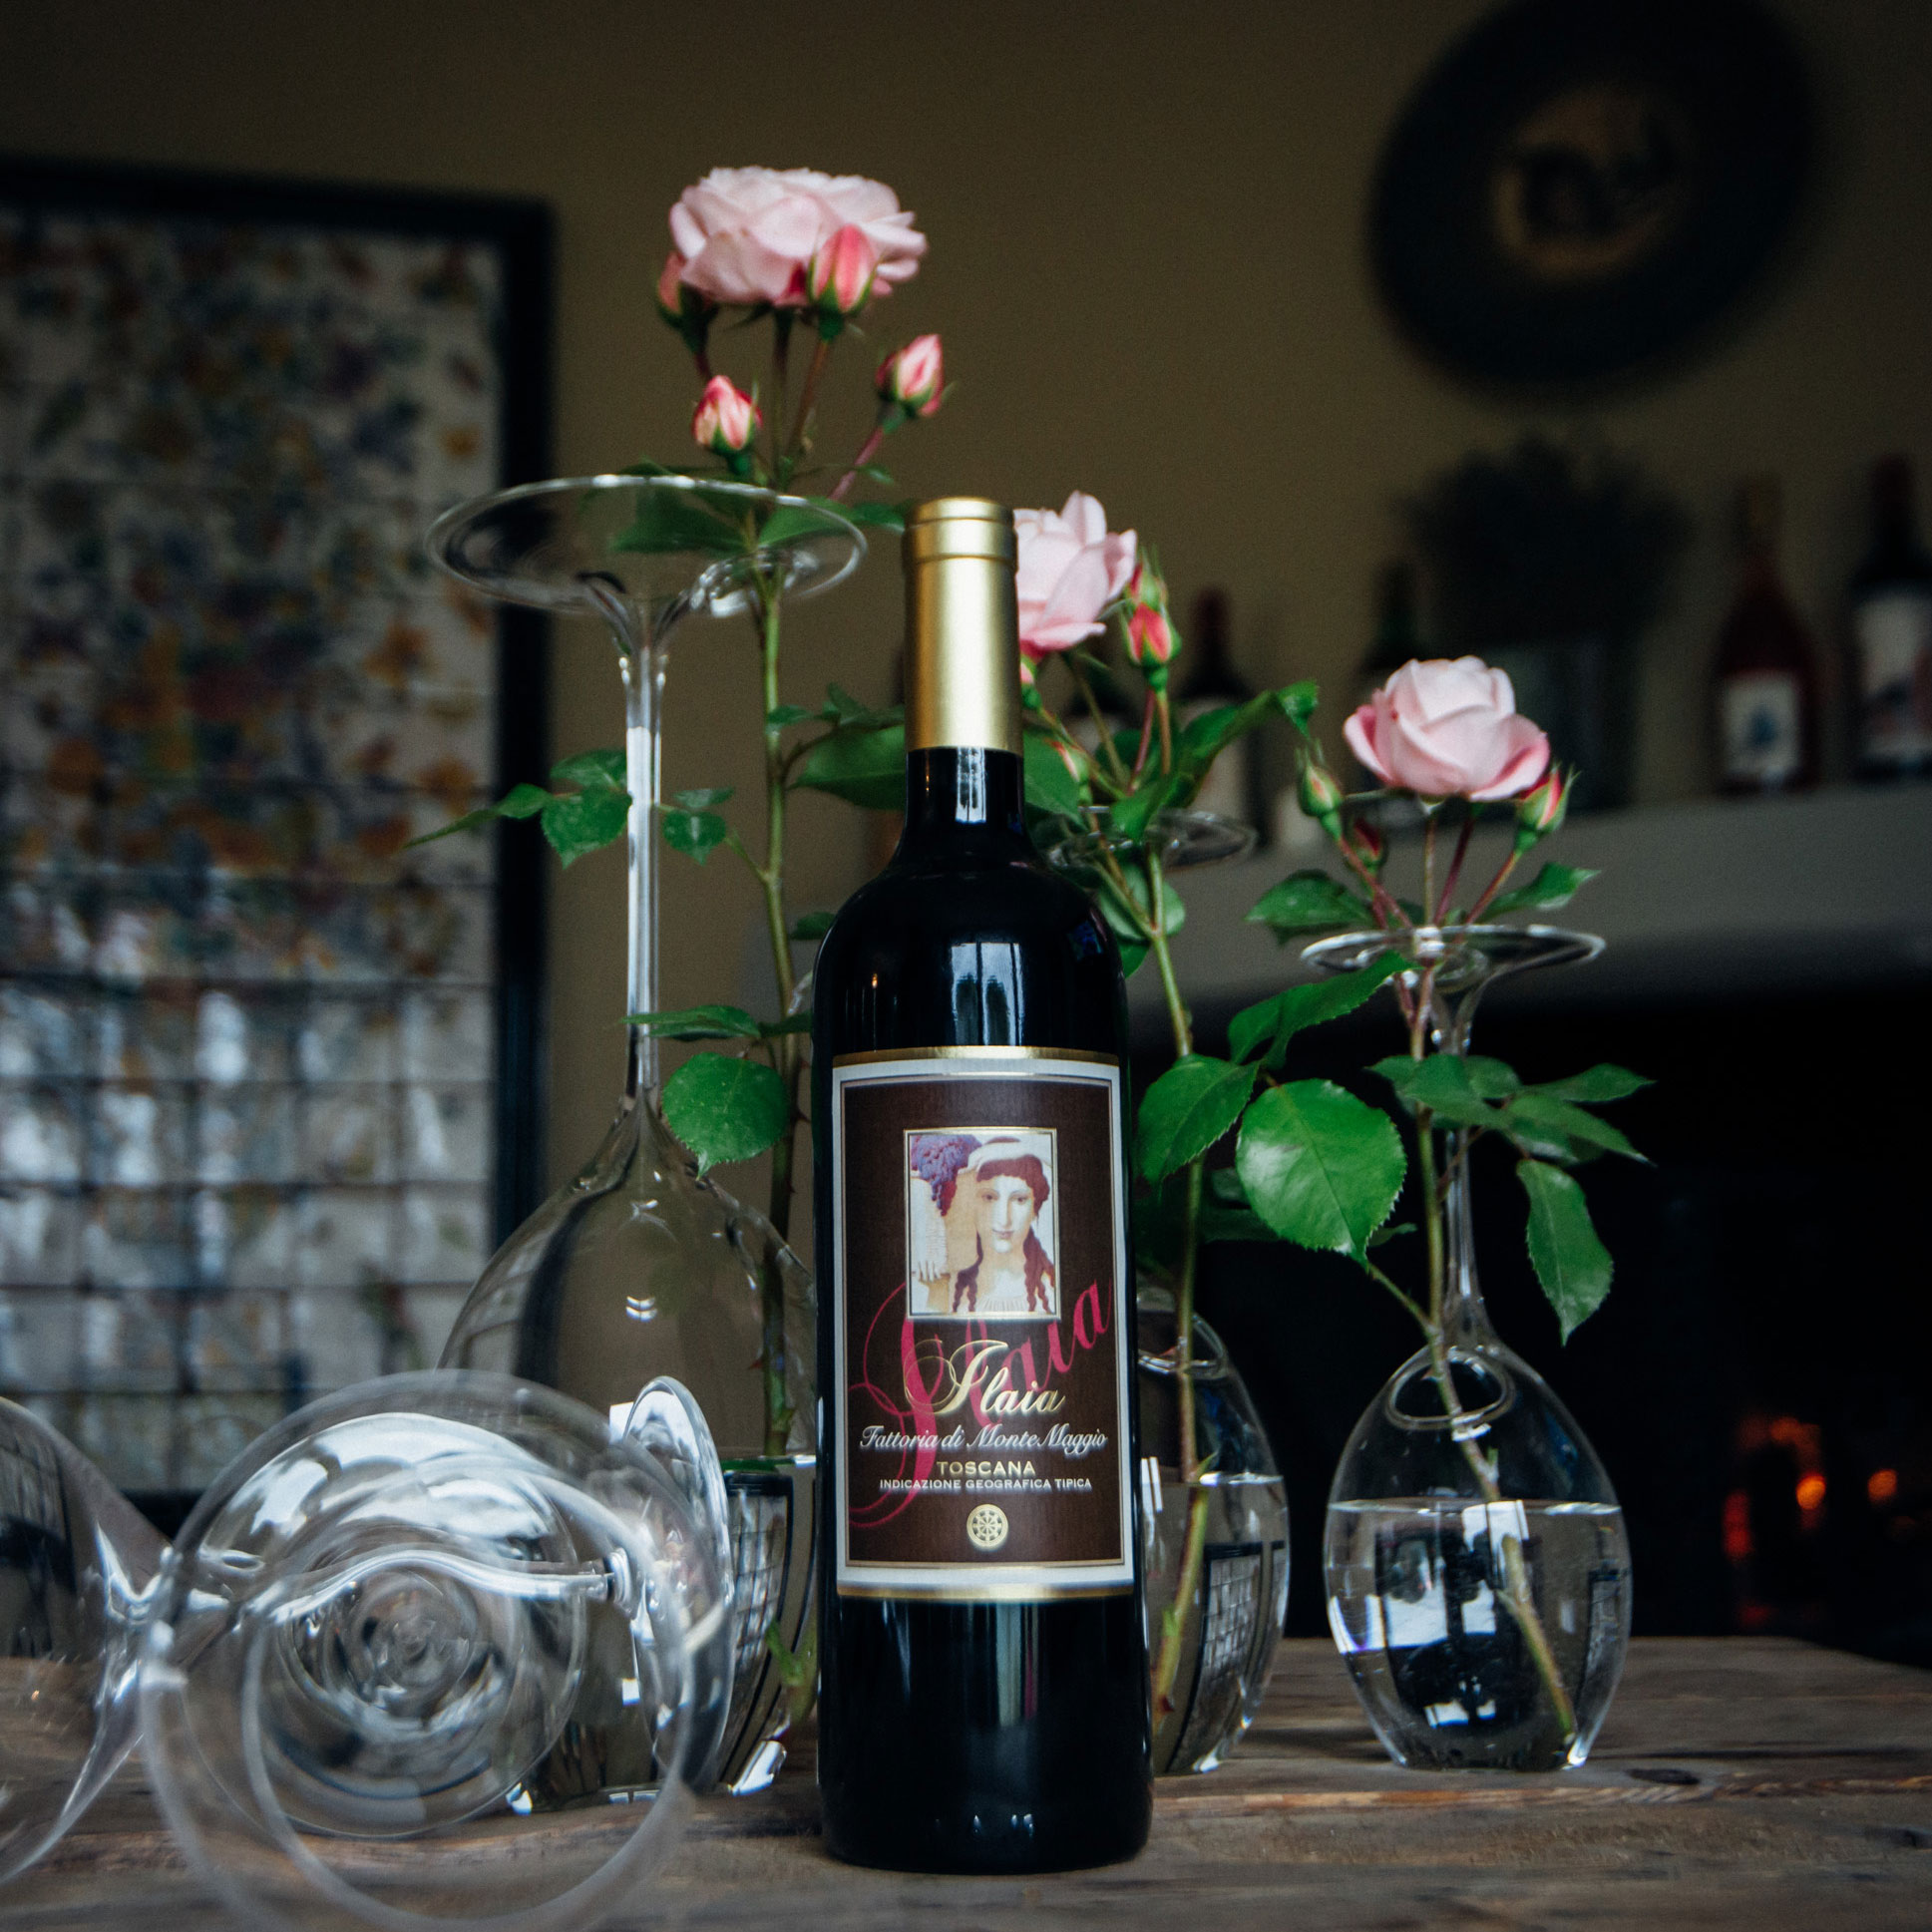 Order Ilaia di Montemaggio - perfect ruby red wine which goes great with meat, game and cheese pairing.